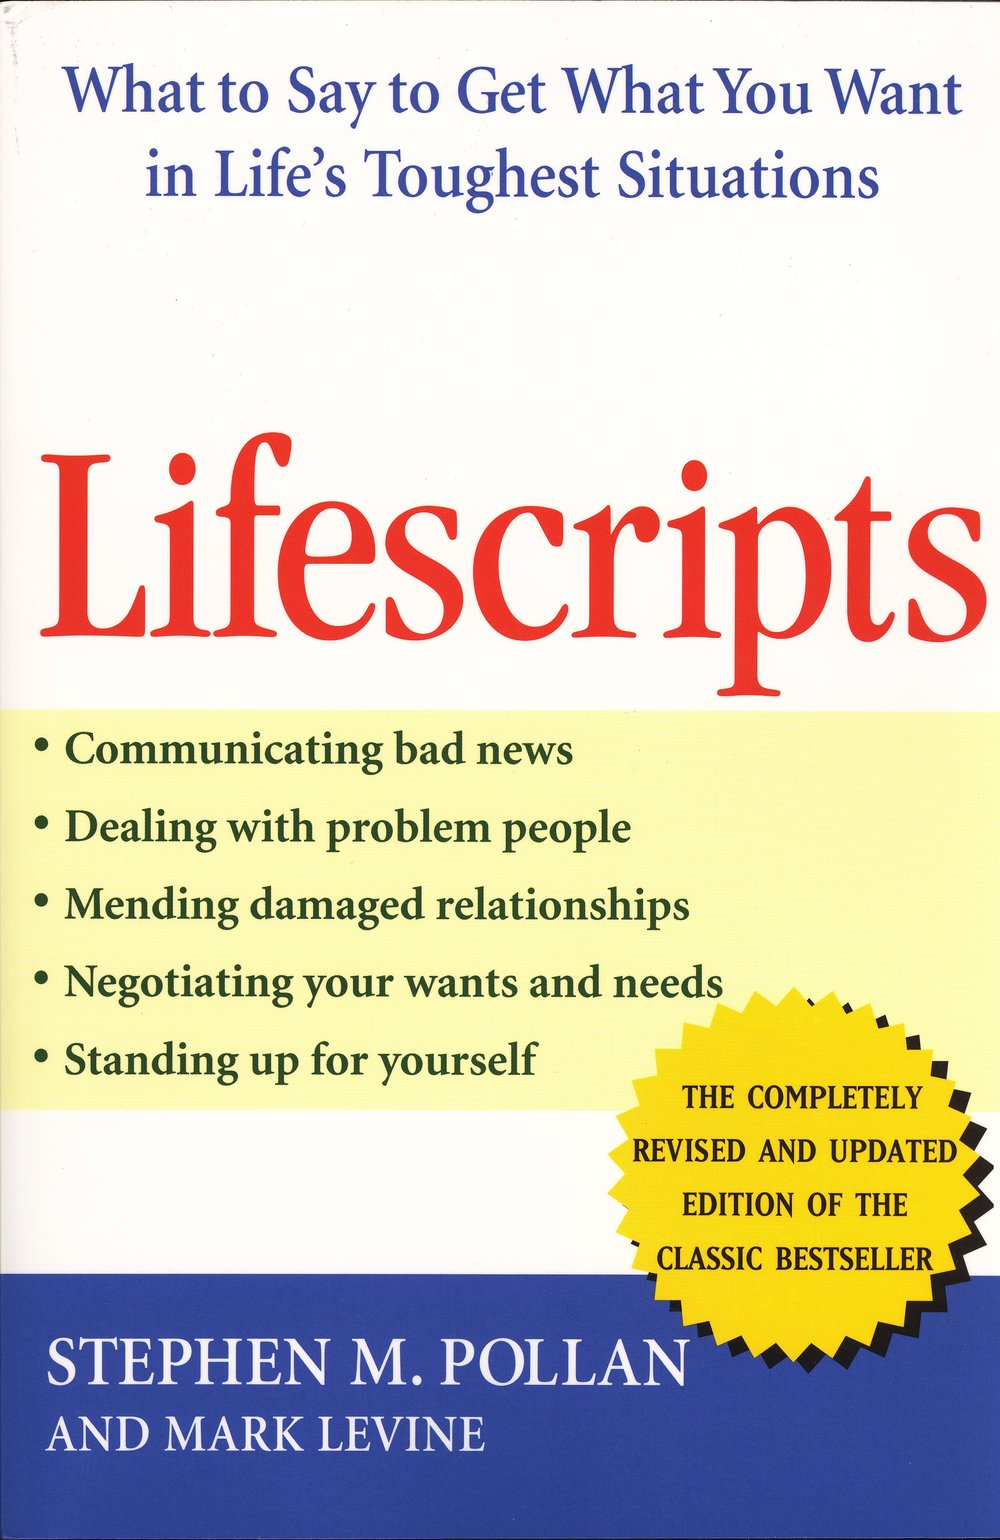 Lifescripts.jpg